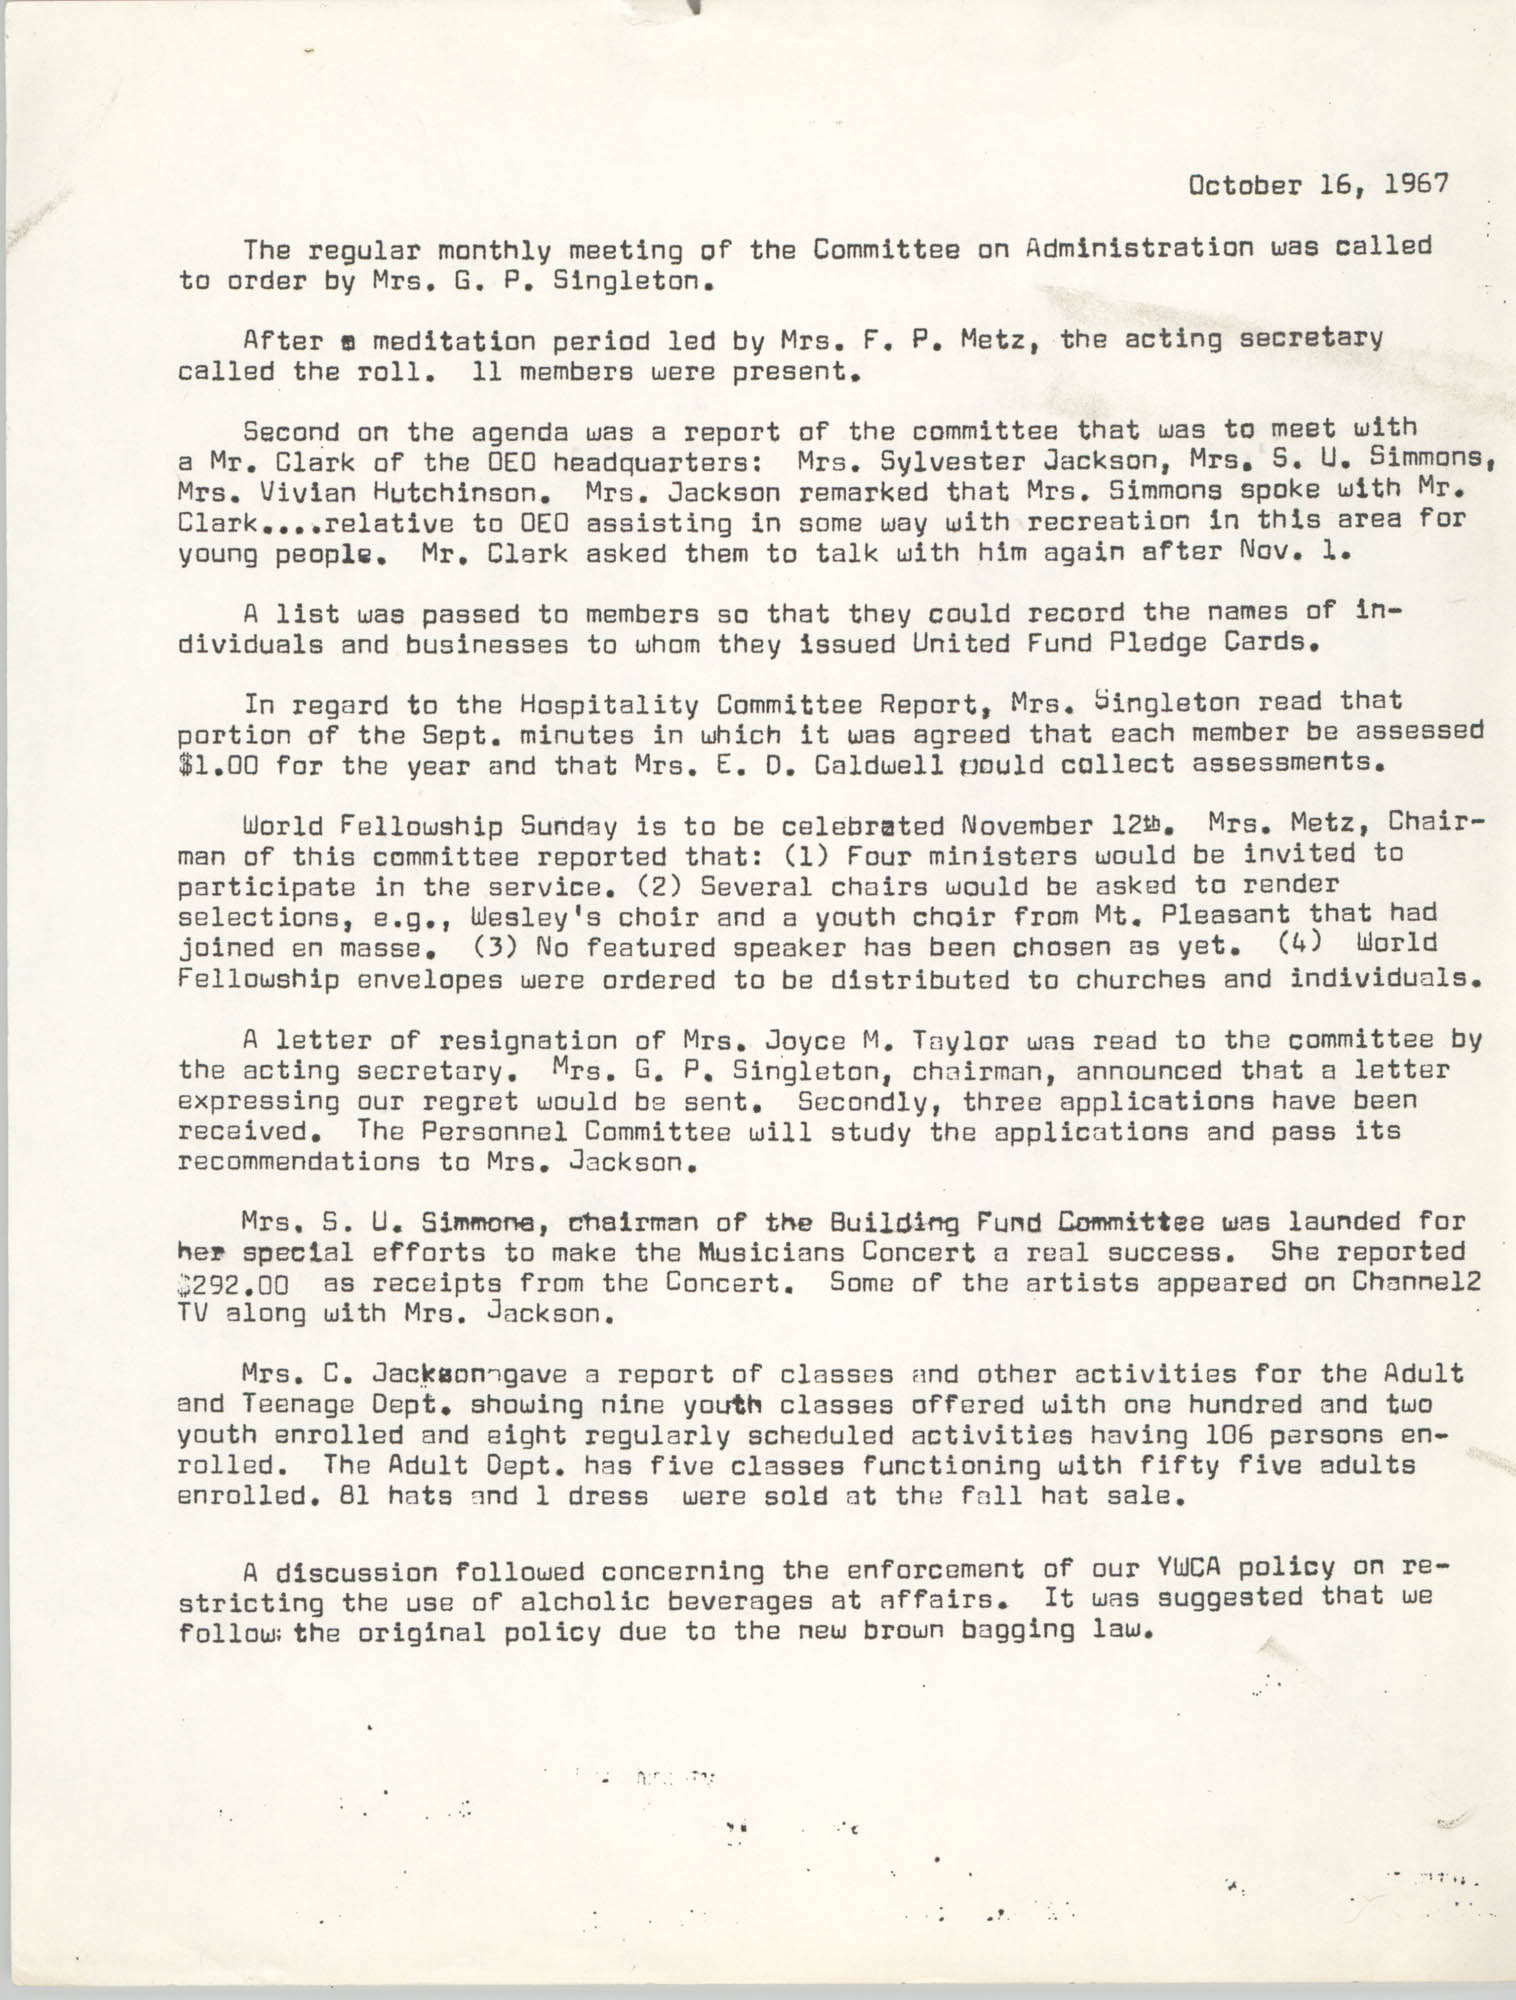 Minutes to the Committee on Administration, Coming Street Y.W.C.A., October 16, 1967